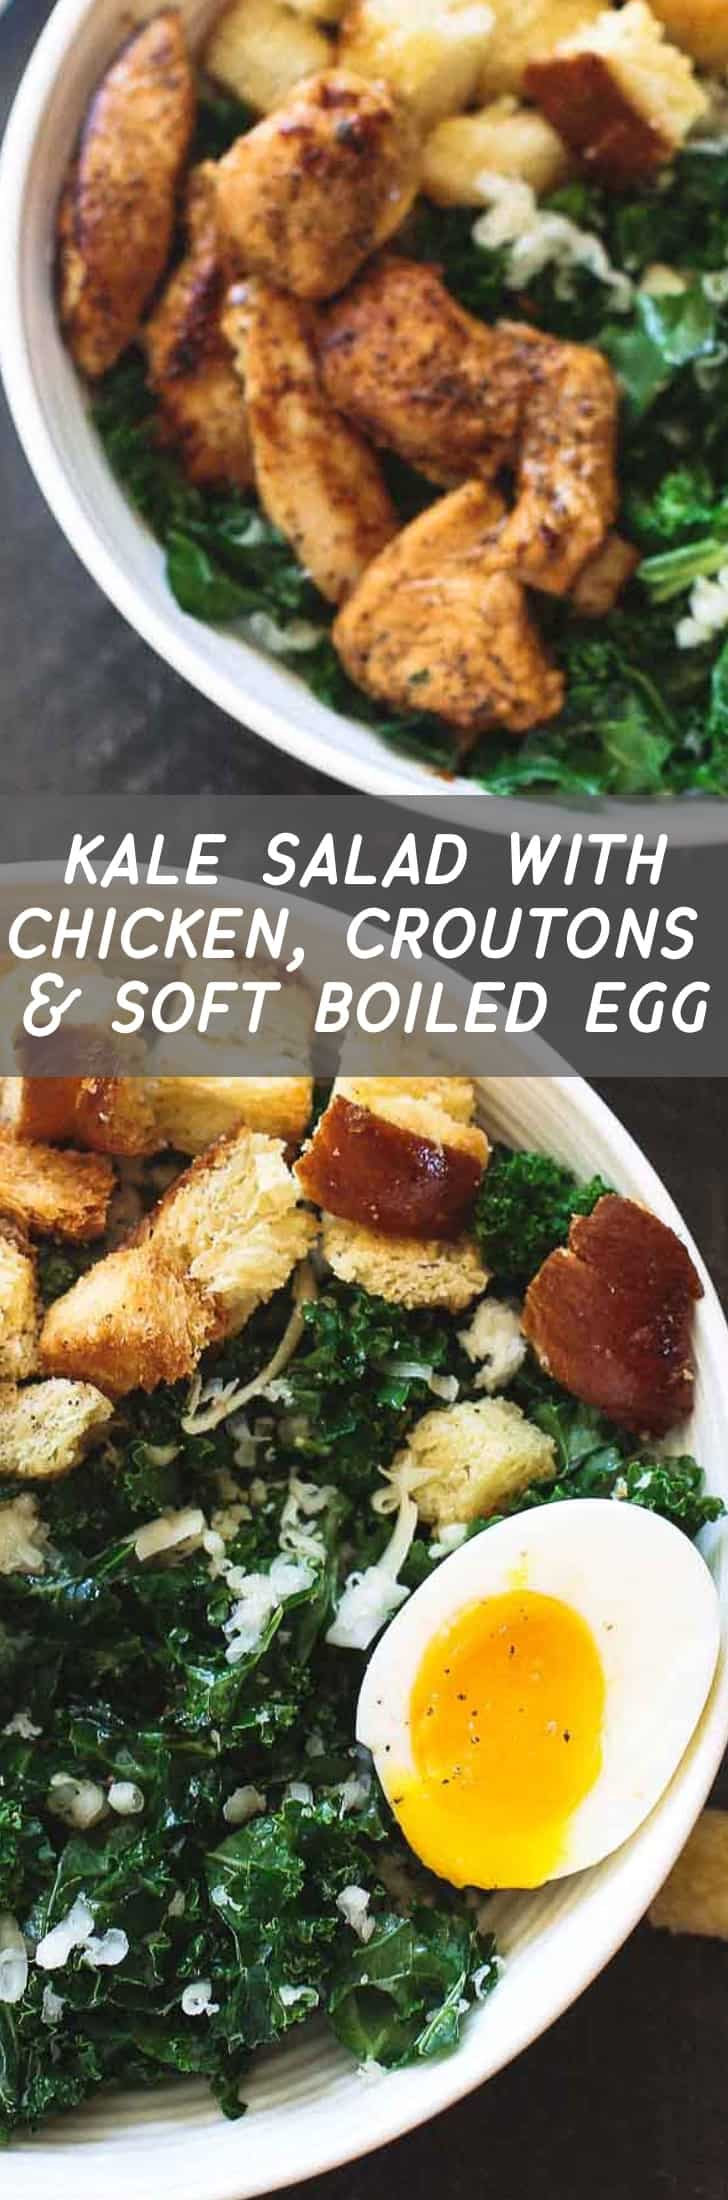 Kale Salad with Chicken, Croutons and Soft Boiled Eggs is packed with protein (24 grams if anyone's counting), light enough for lunch with only 360 calories and filling enough for dinner. And full of so much flavor you'll want it for both!